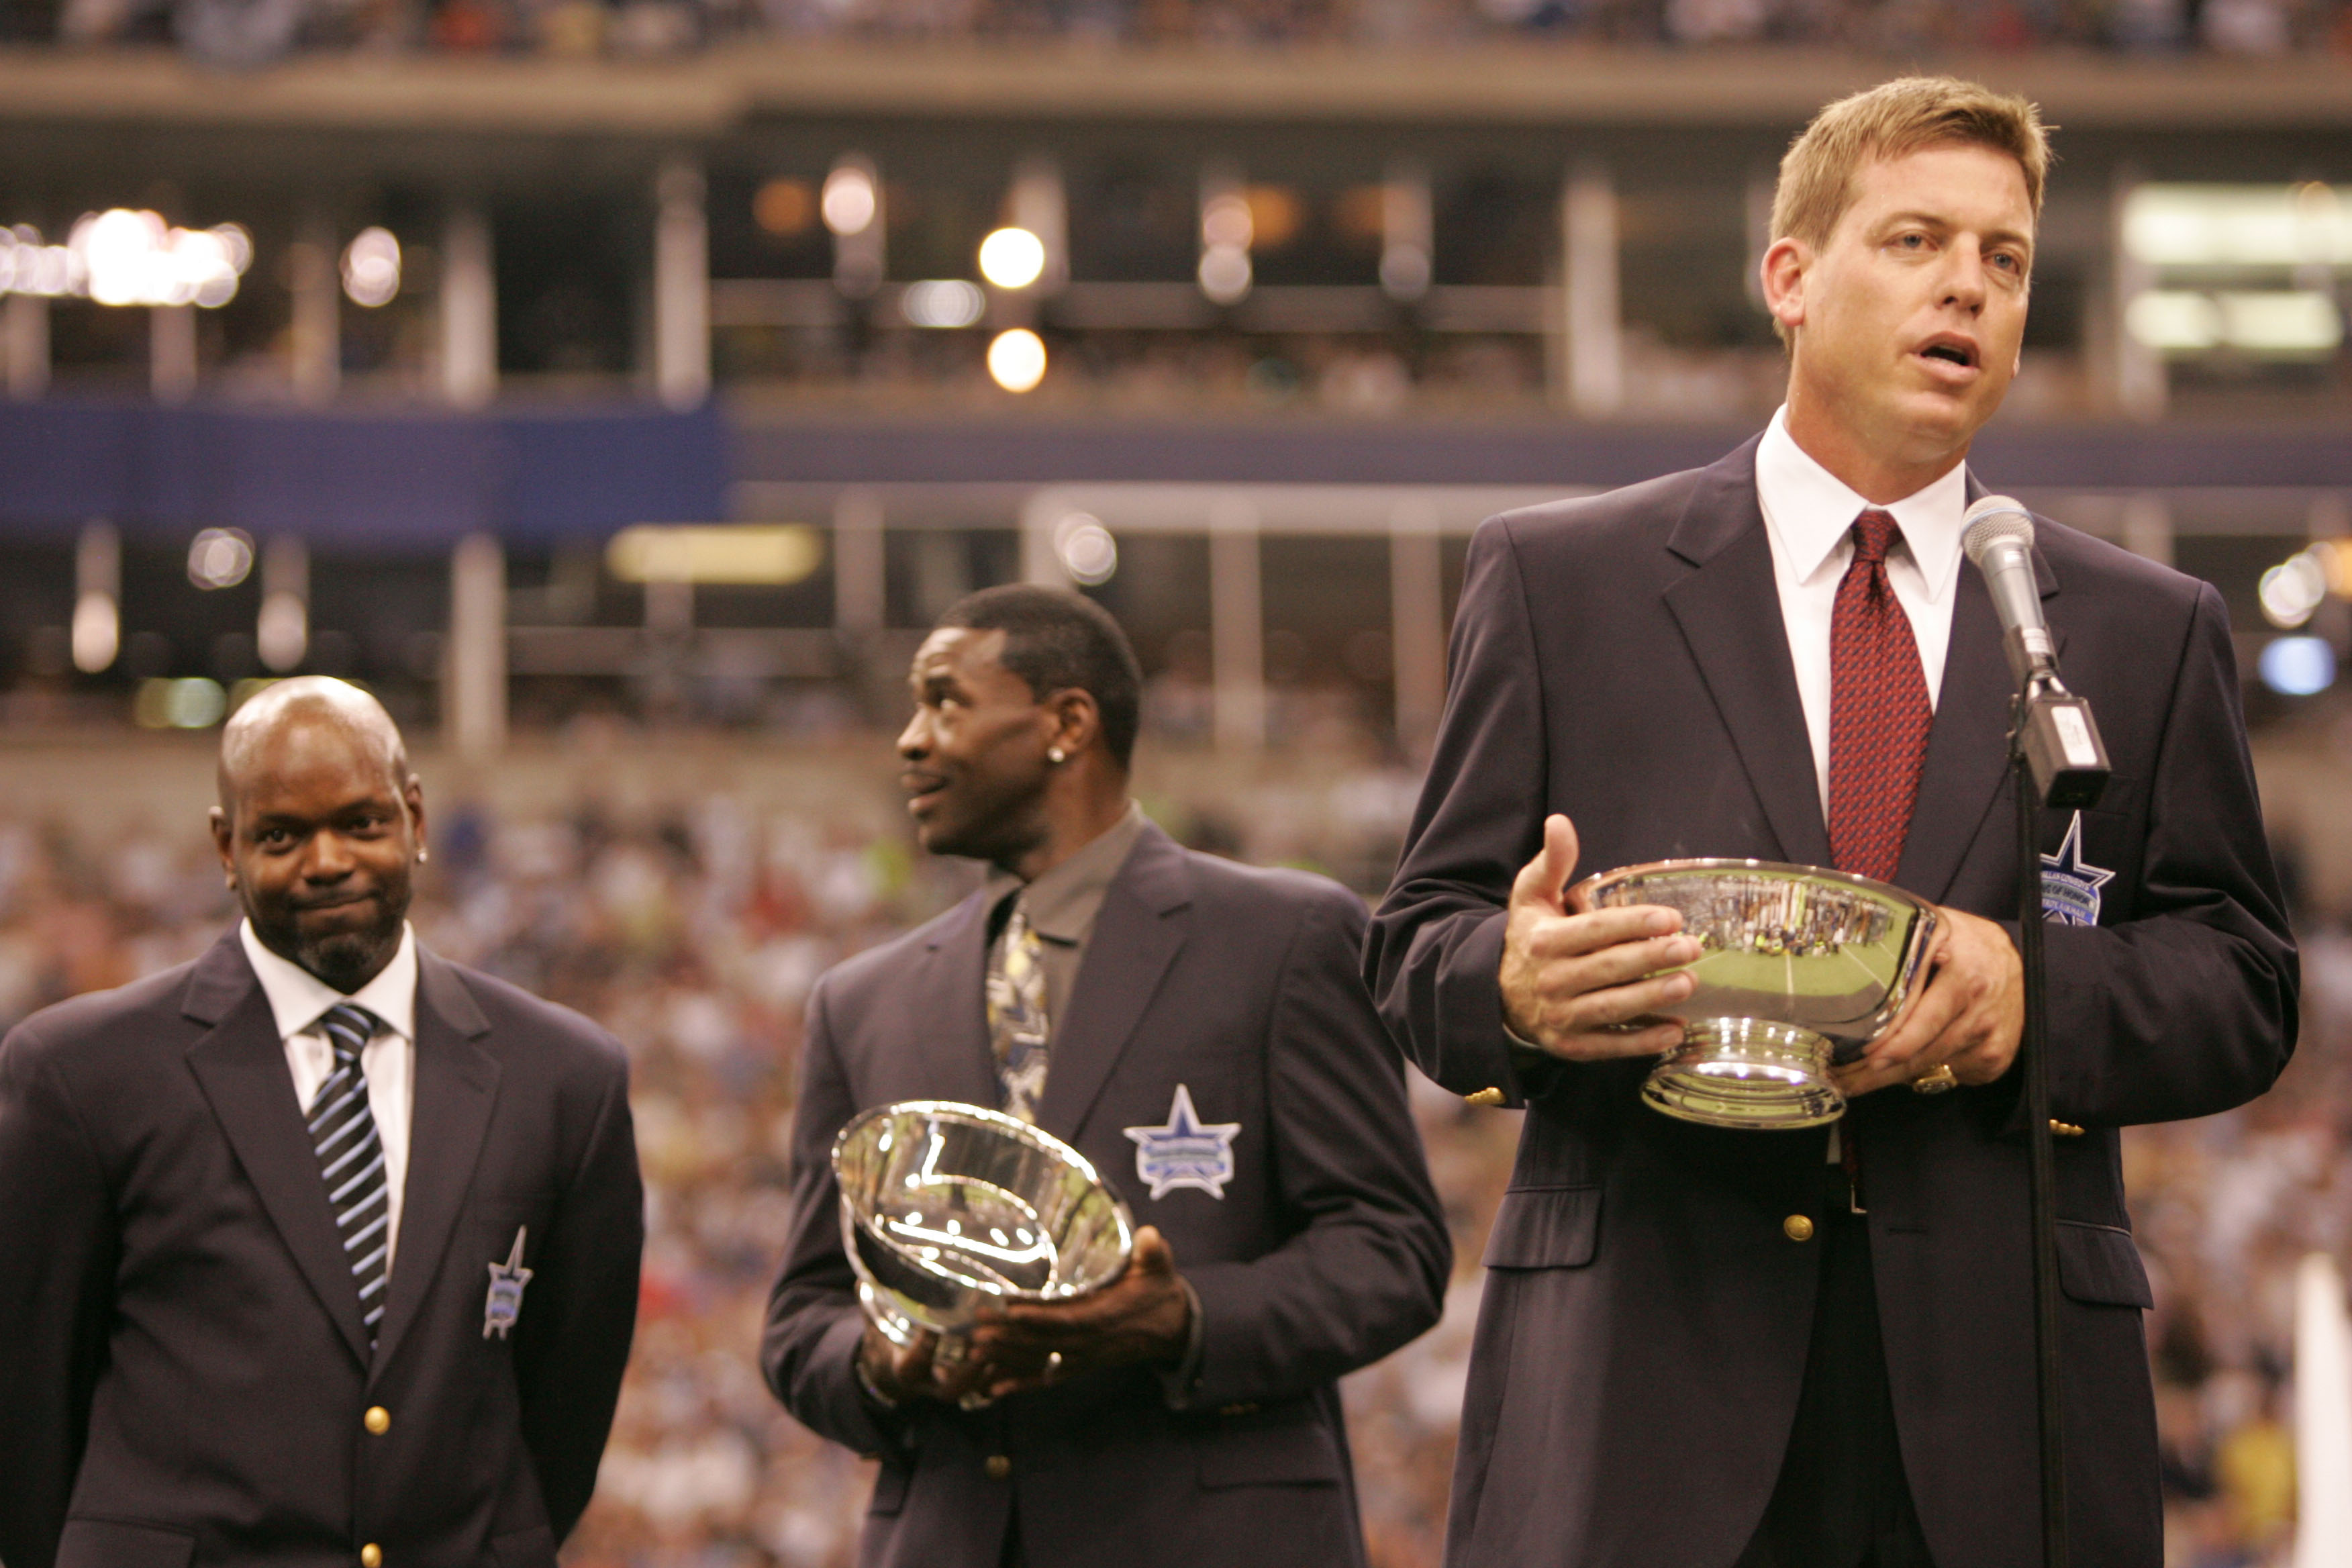 IRVING, TX - SEPTEMBER 19:  Troy Aikman, former Dallas Cowboys quaterback, speaks to the fans in front of former teammates Emmitt Smith (L) and Michael Irvin during a ceremony inducting Aikman into the Cowbos ring of honor at half-time of the game between